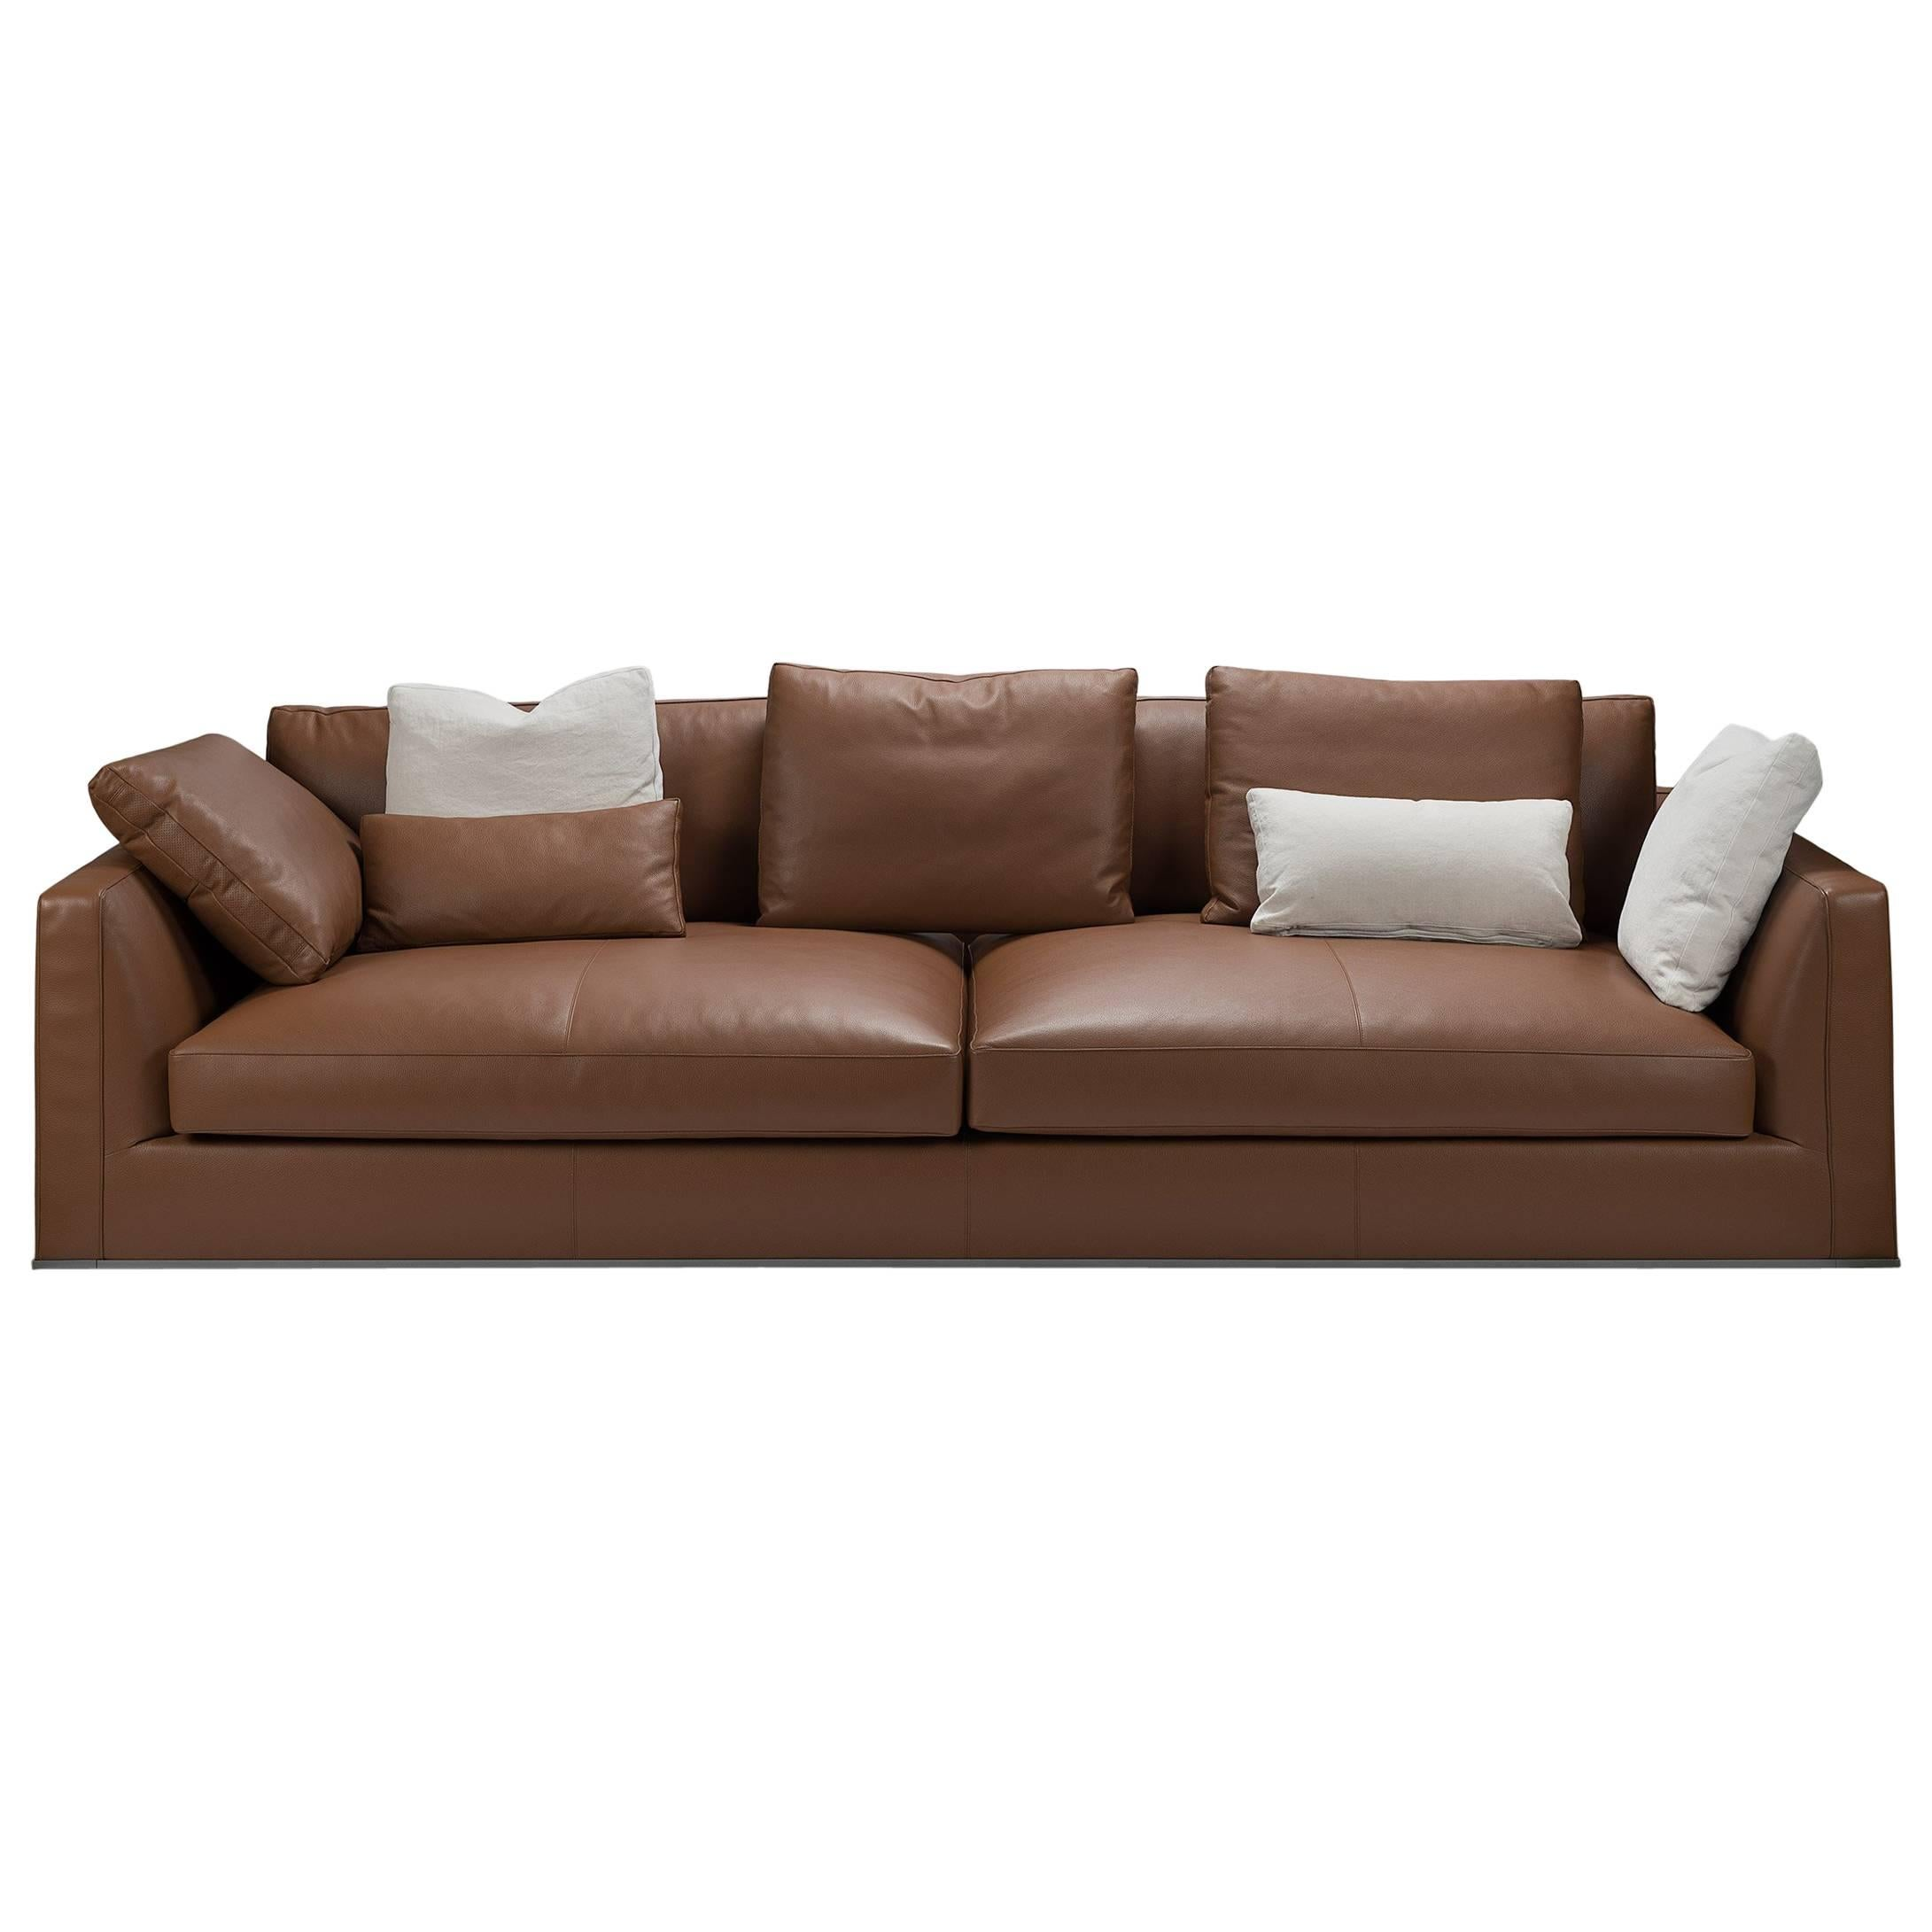 leather italia sofa furniture couch vs bed richard deep by b for sale at 1stdibs